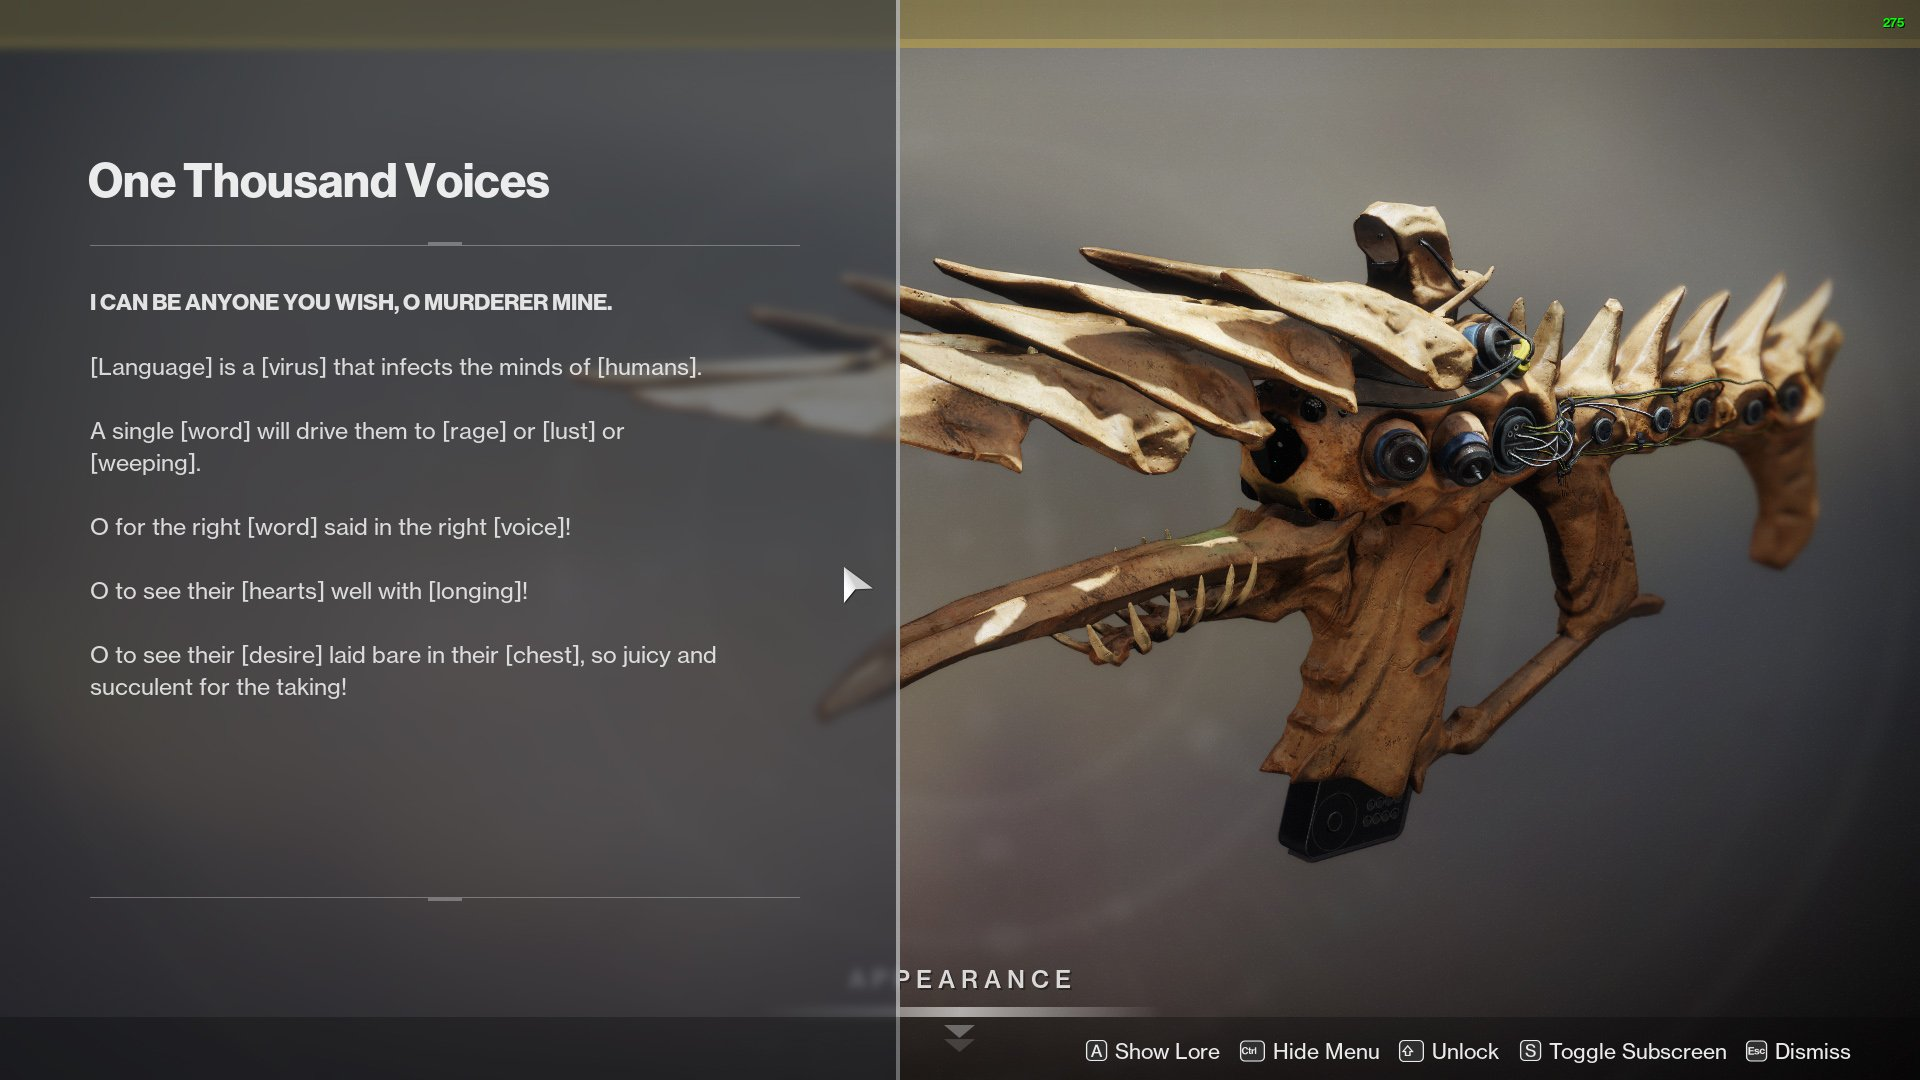 Get One Thousand Voices in Destiny 2 1k voices